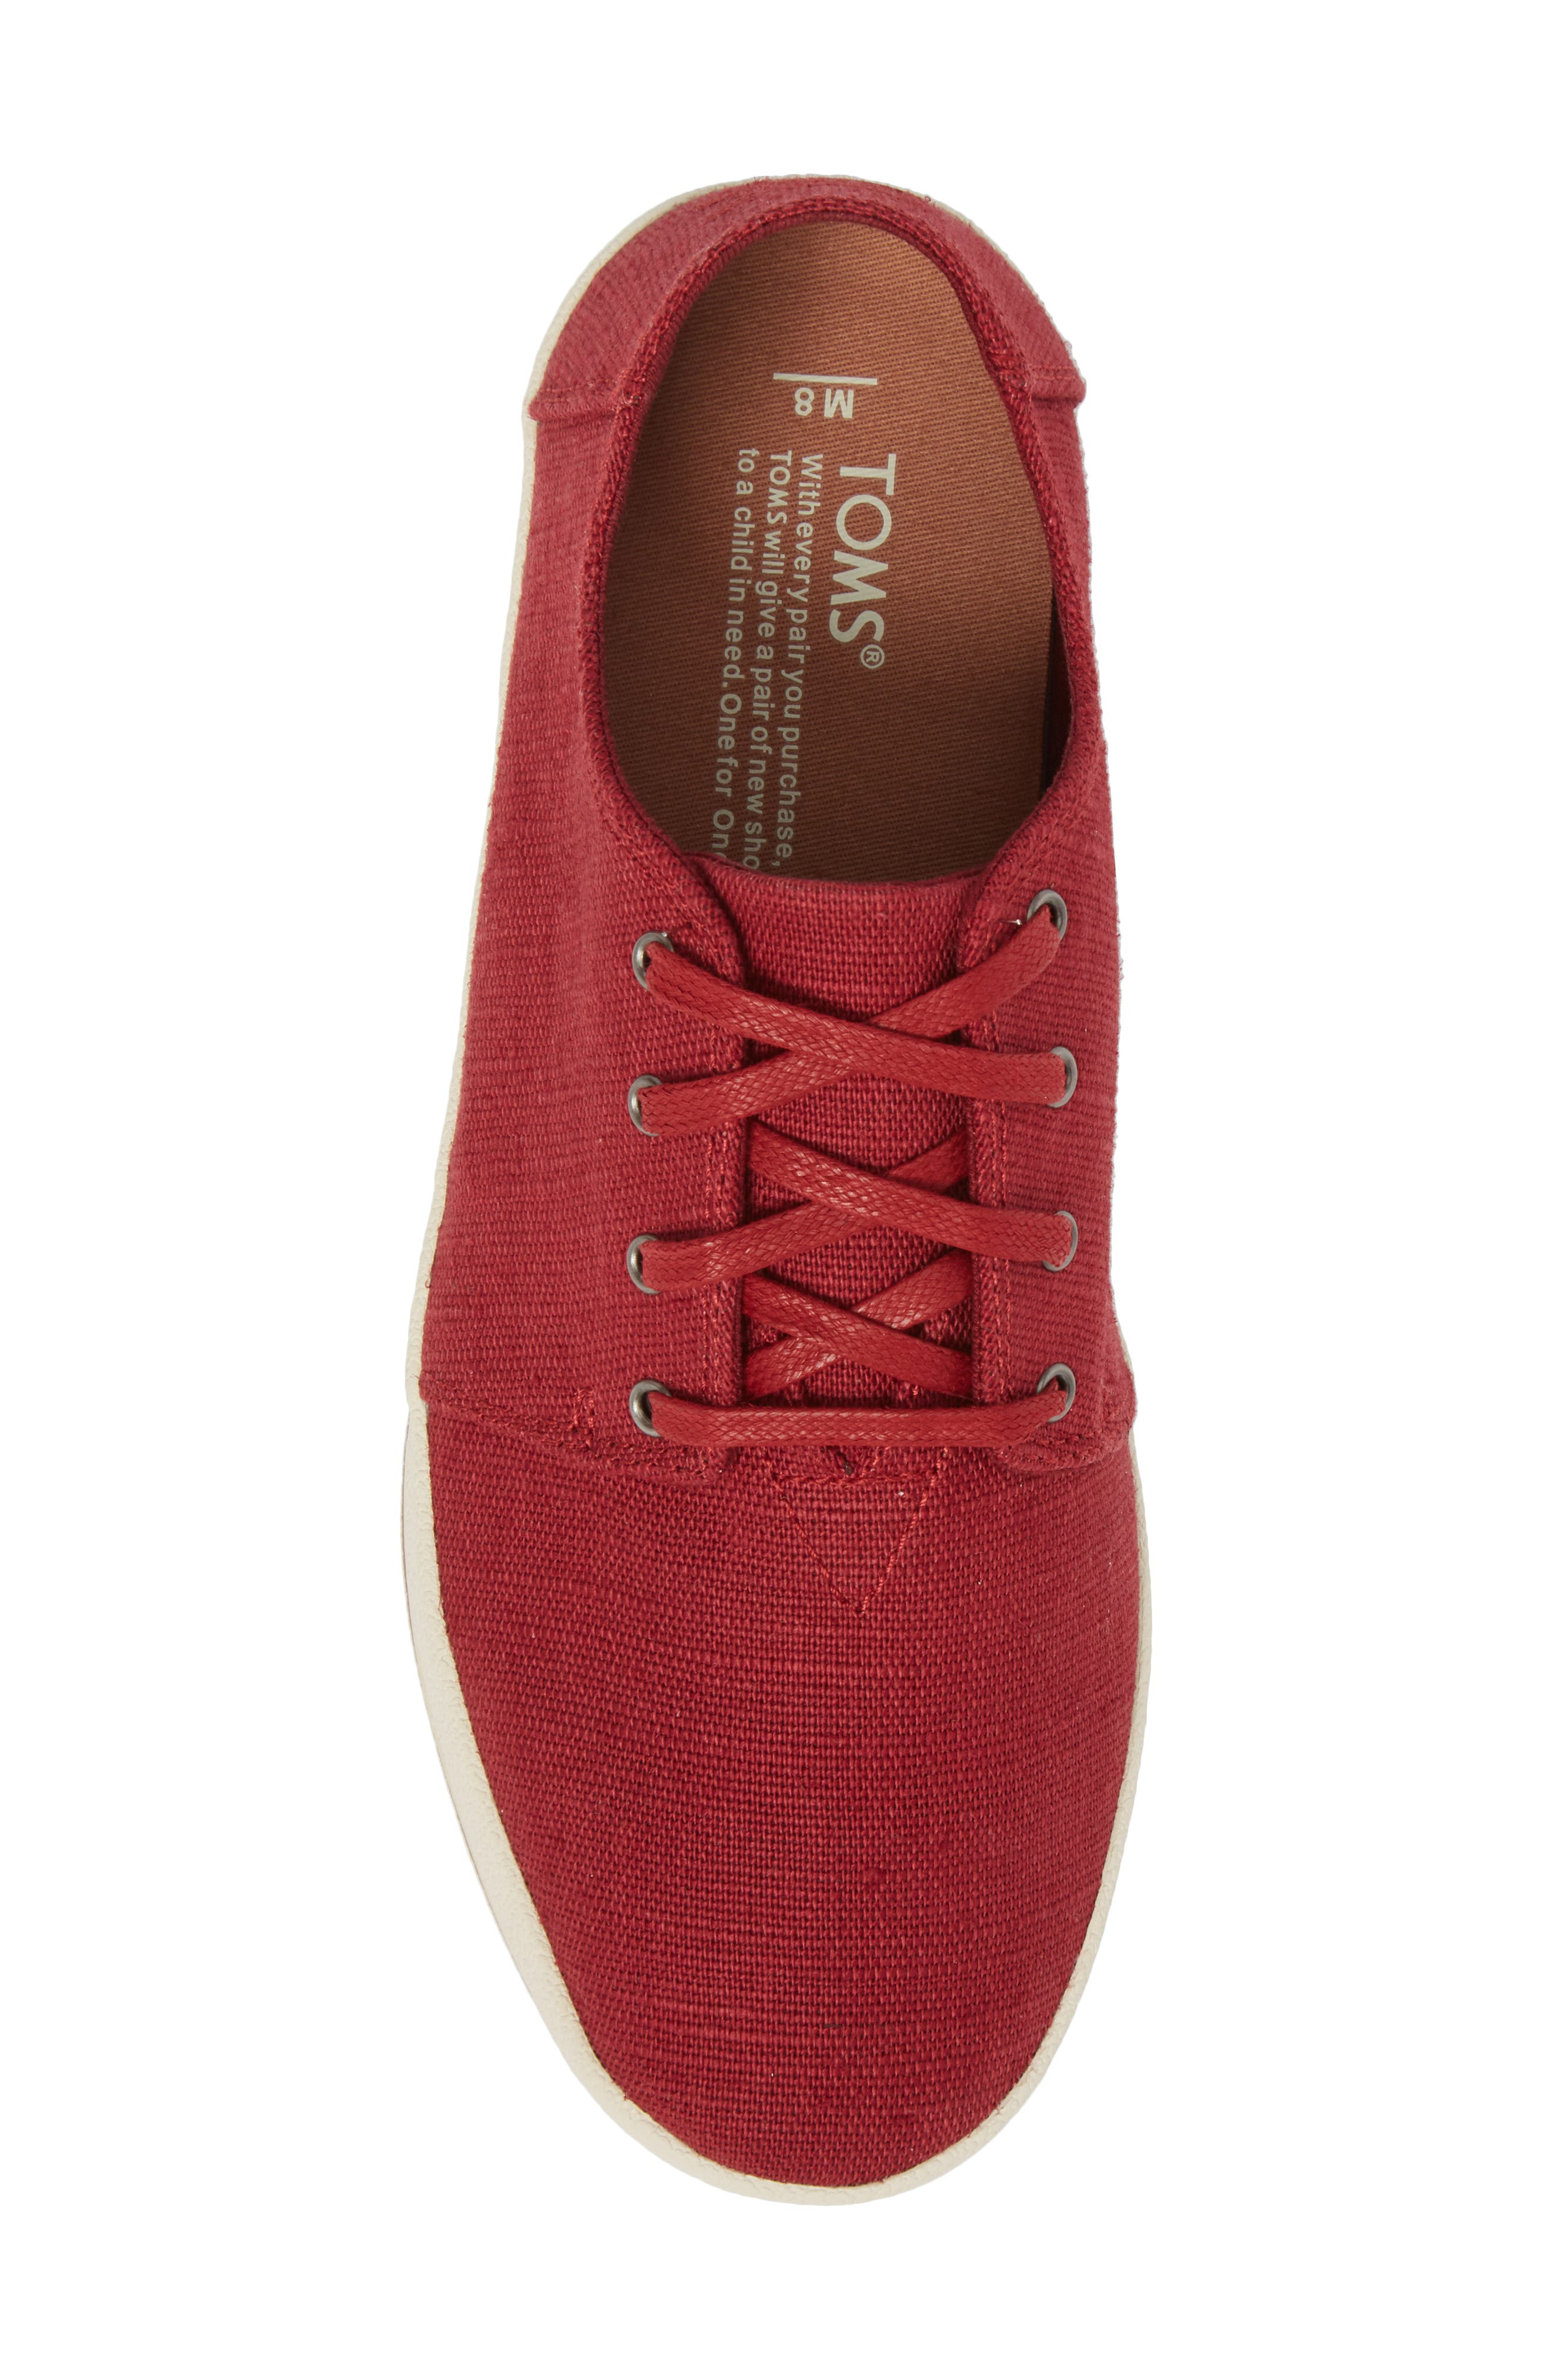 Payton Sneaker,                             Alternate thumbnail 5, color,                             Henna Red Heritage Canvas